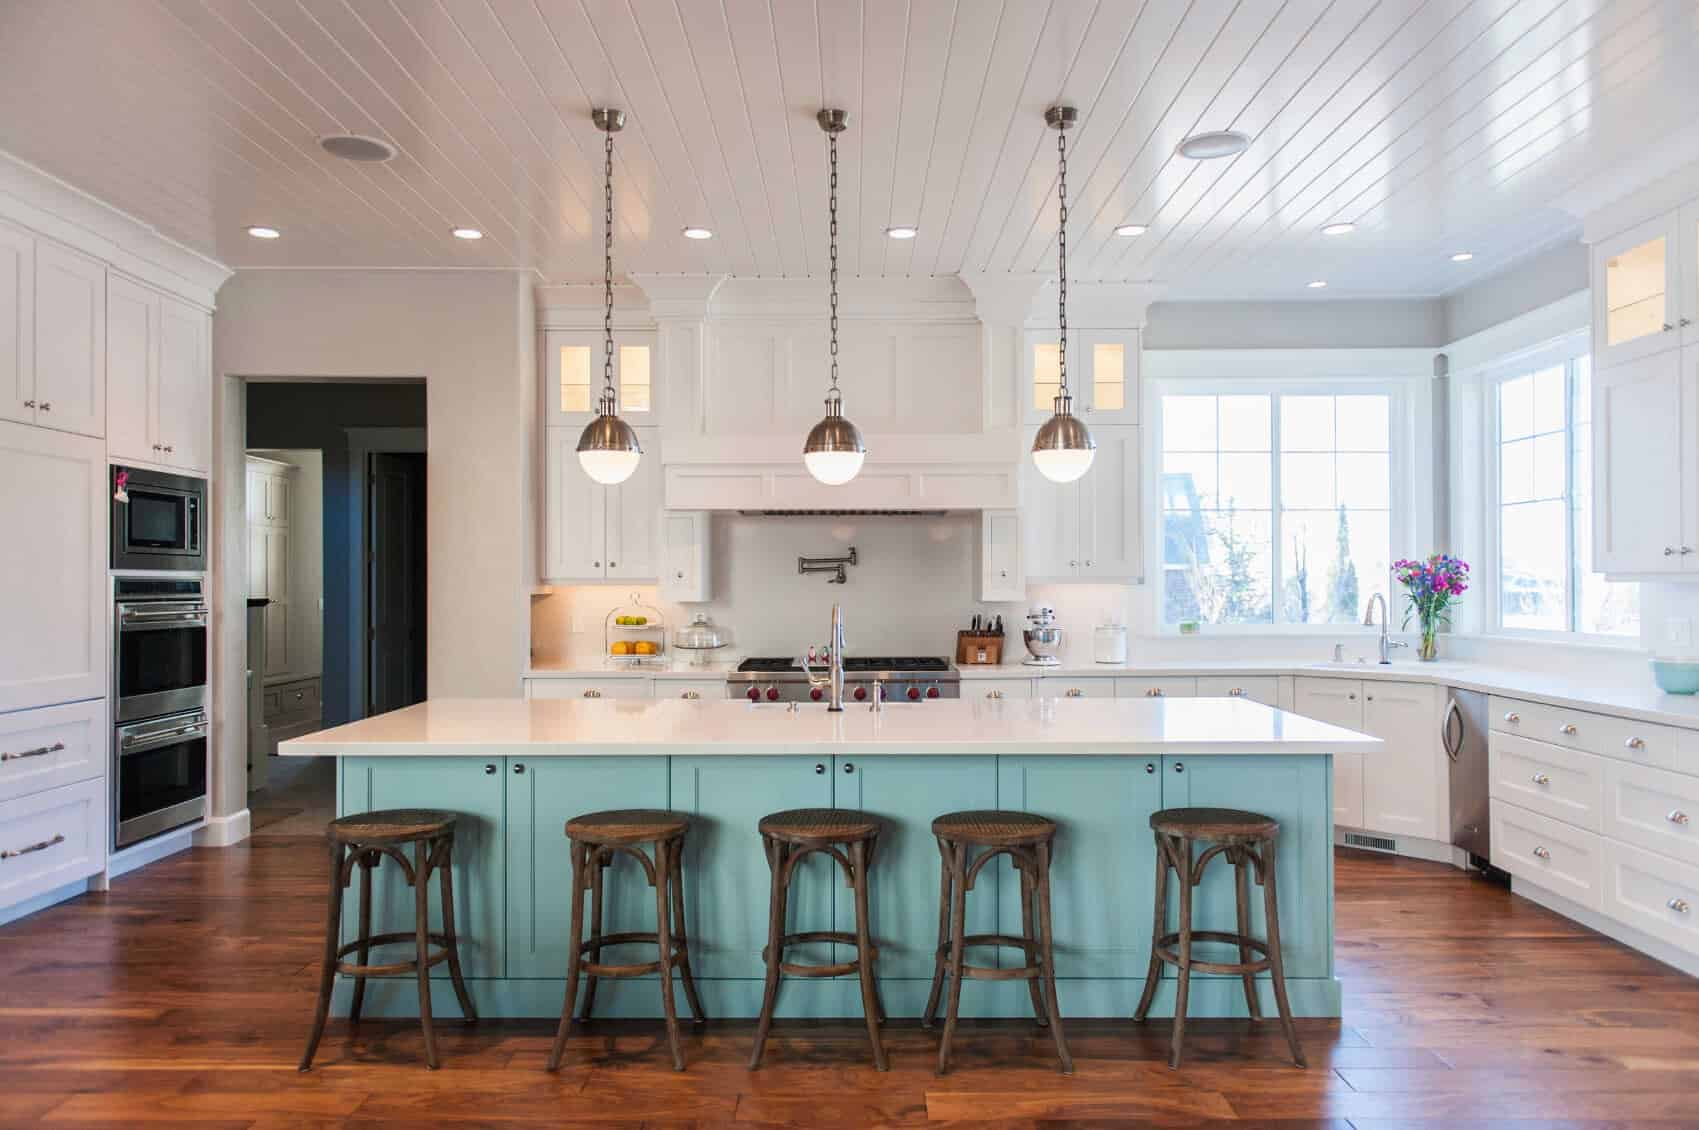 Spacious kitchen featuring white kitchen counters and a green center island with space for a breakfast bar lighted by three pendant lights.